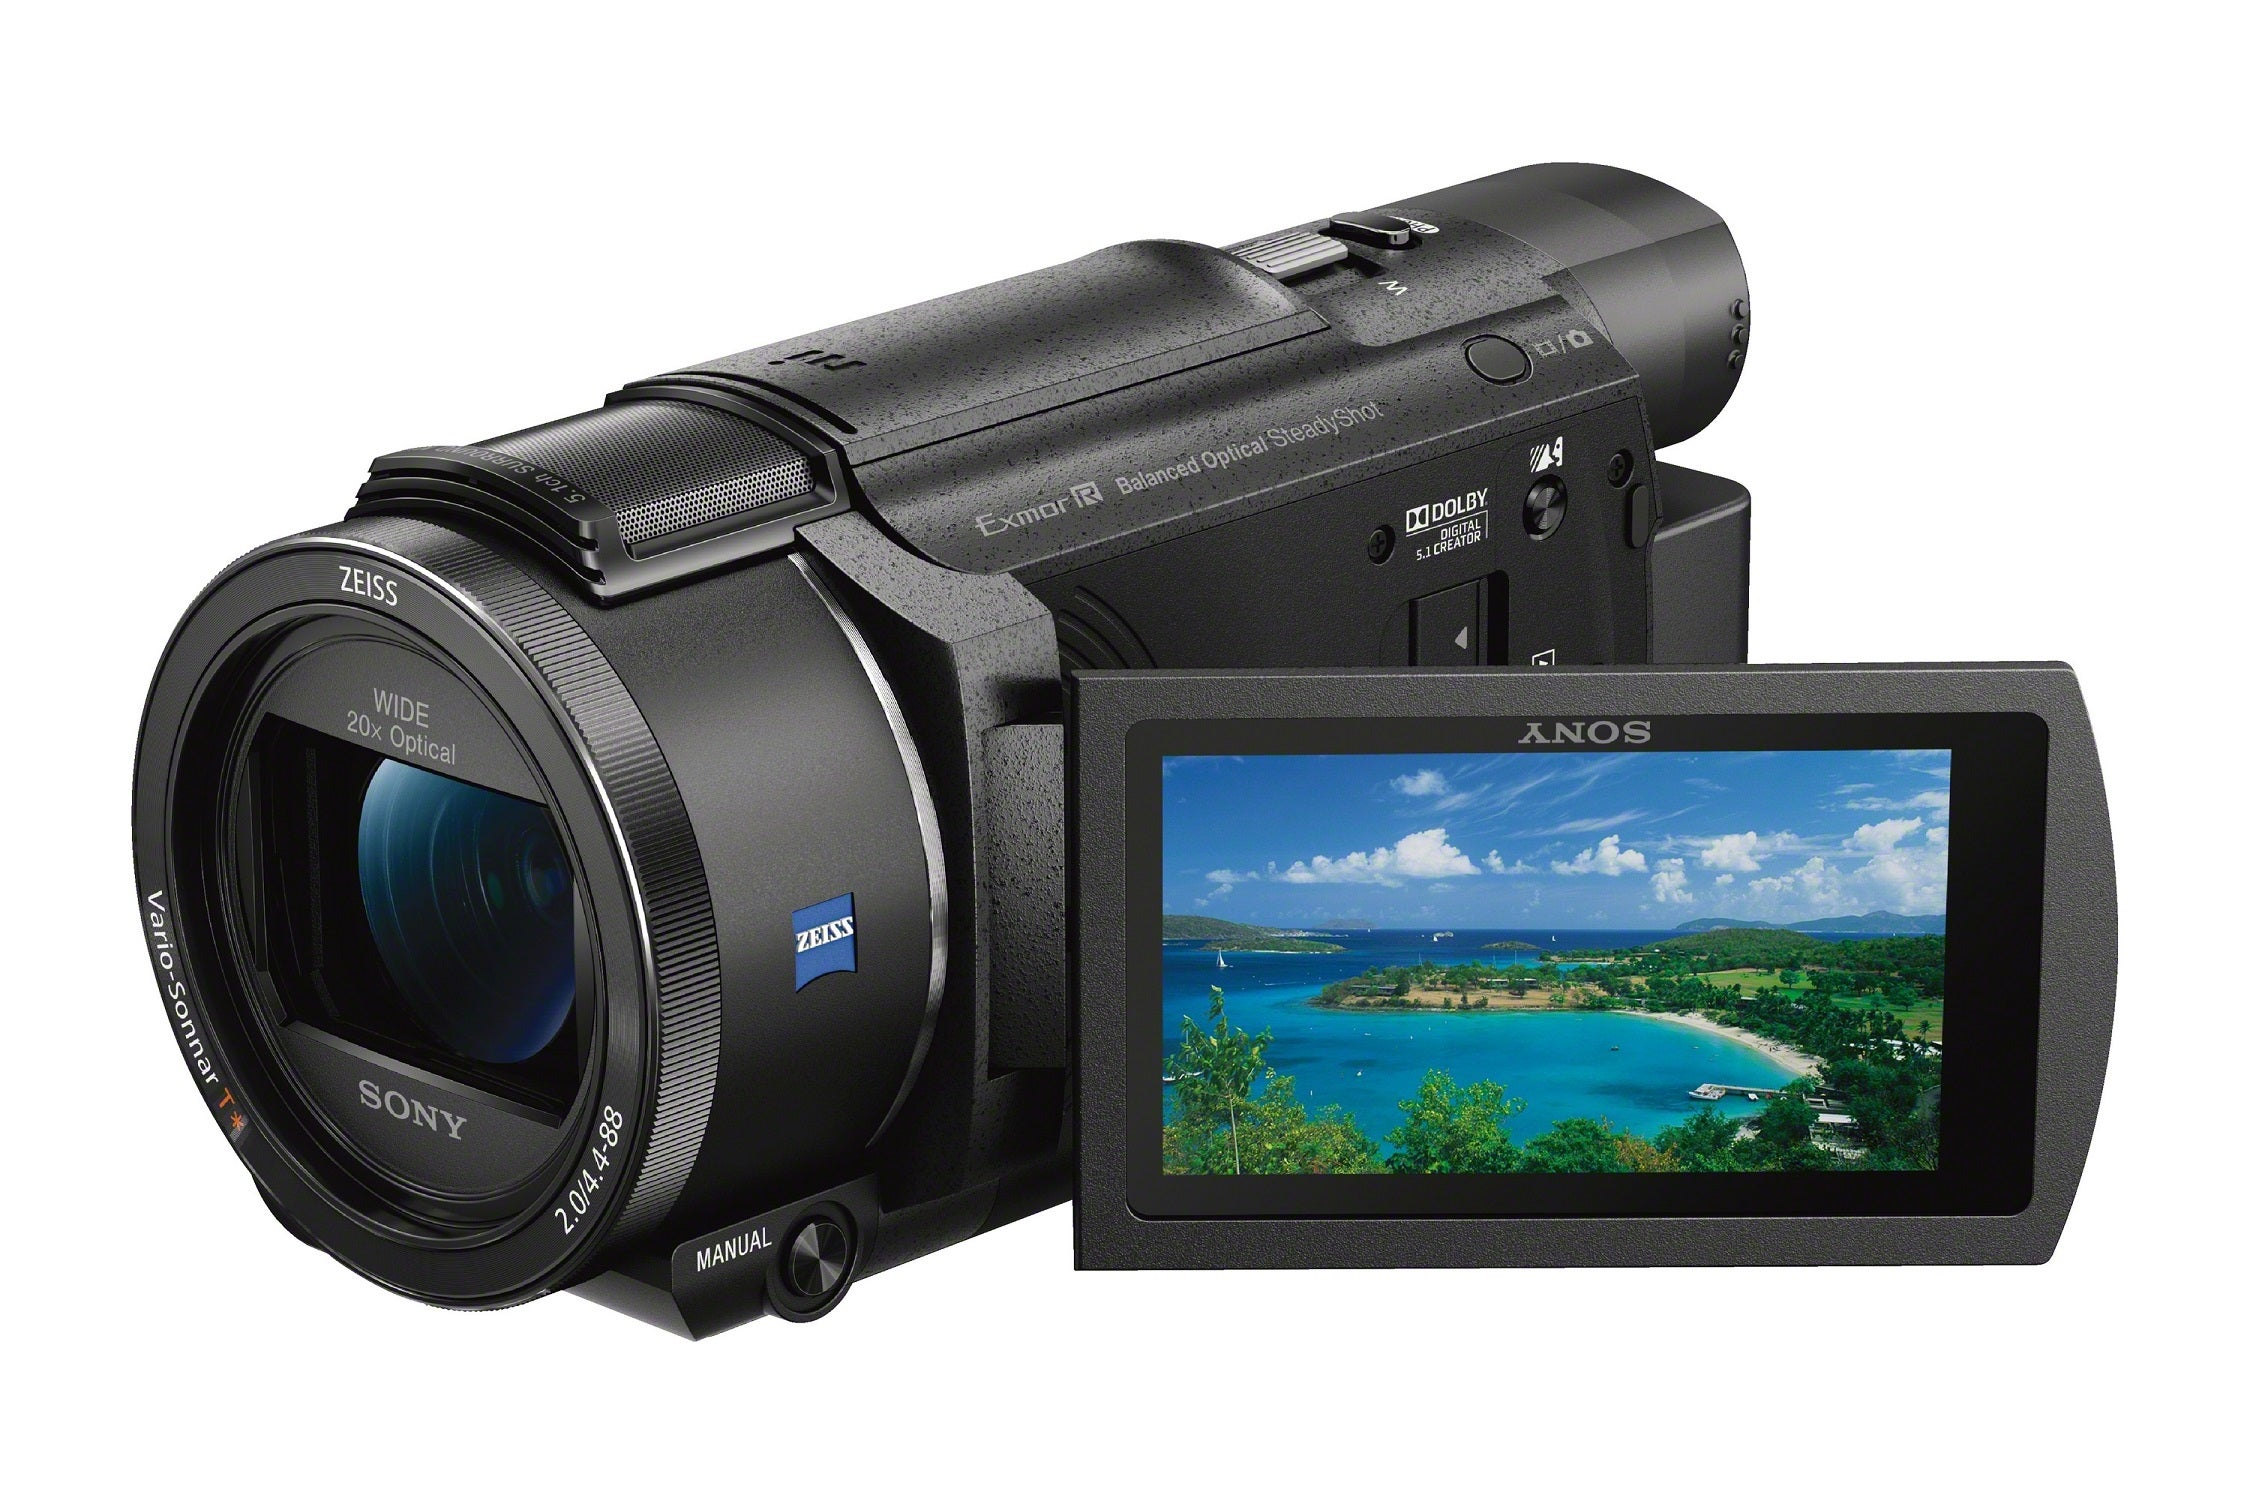 Sony_FDR-AX53_4k_Digital_Video_Camera_BK_FL